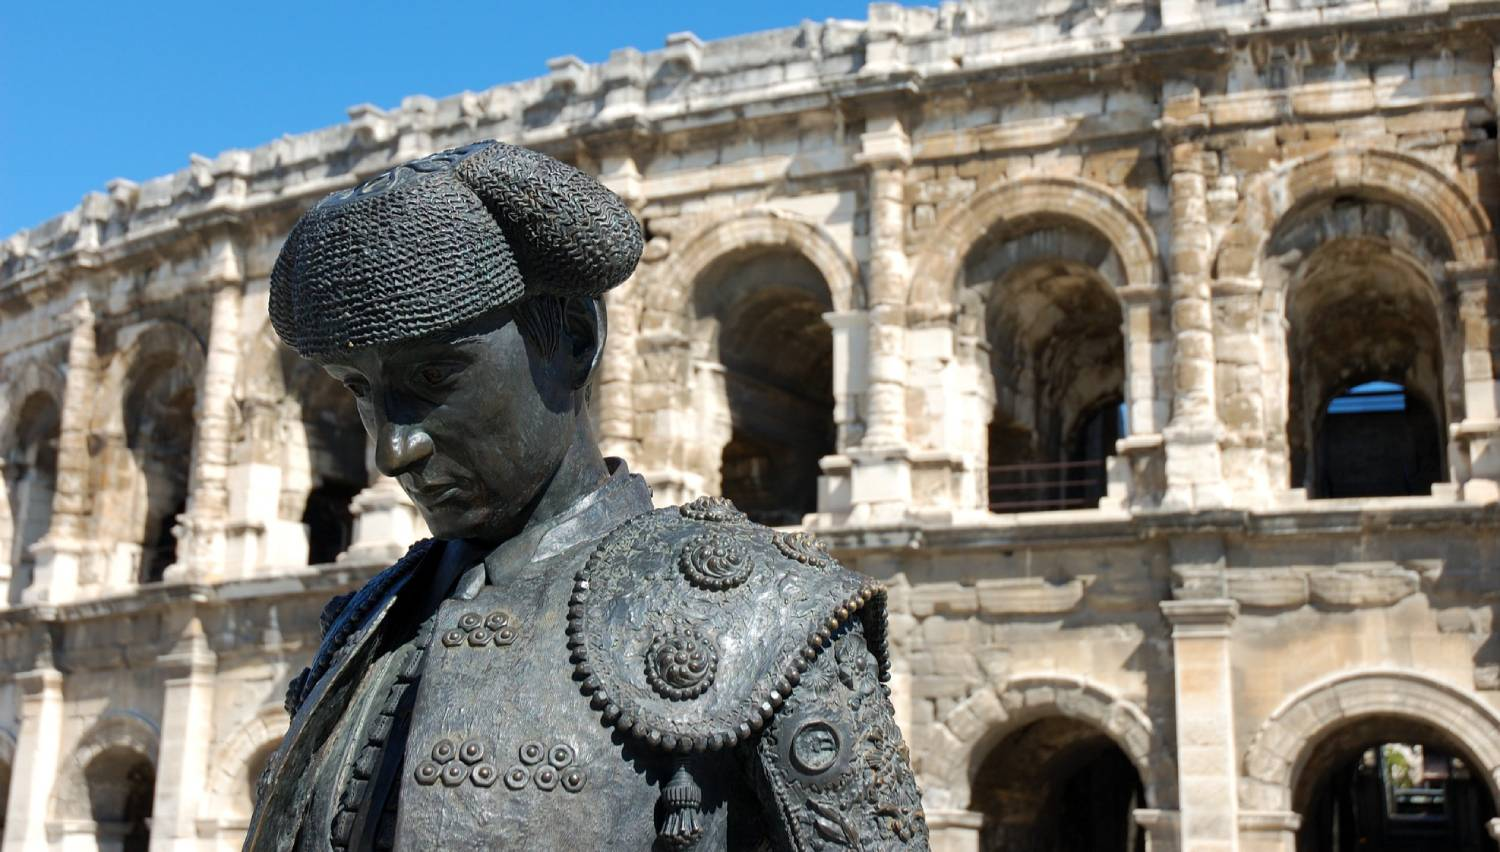 Nîmes - The Best Places To Visit In France